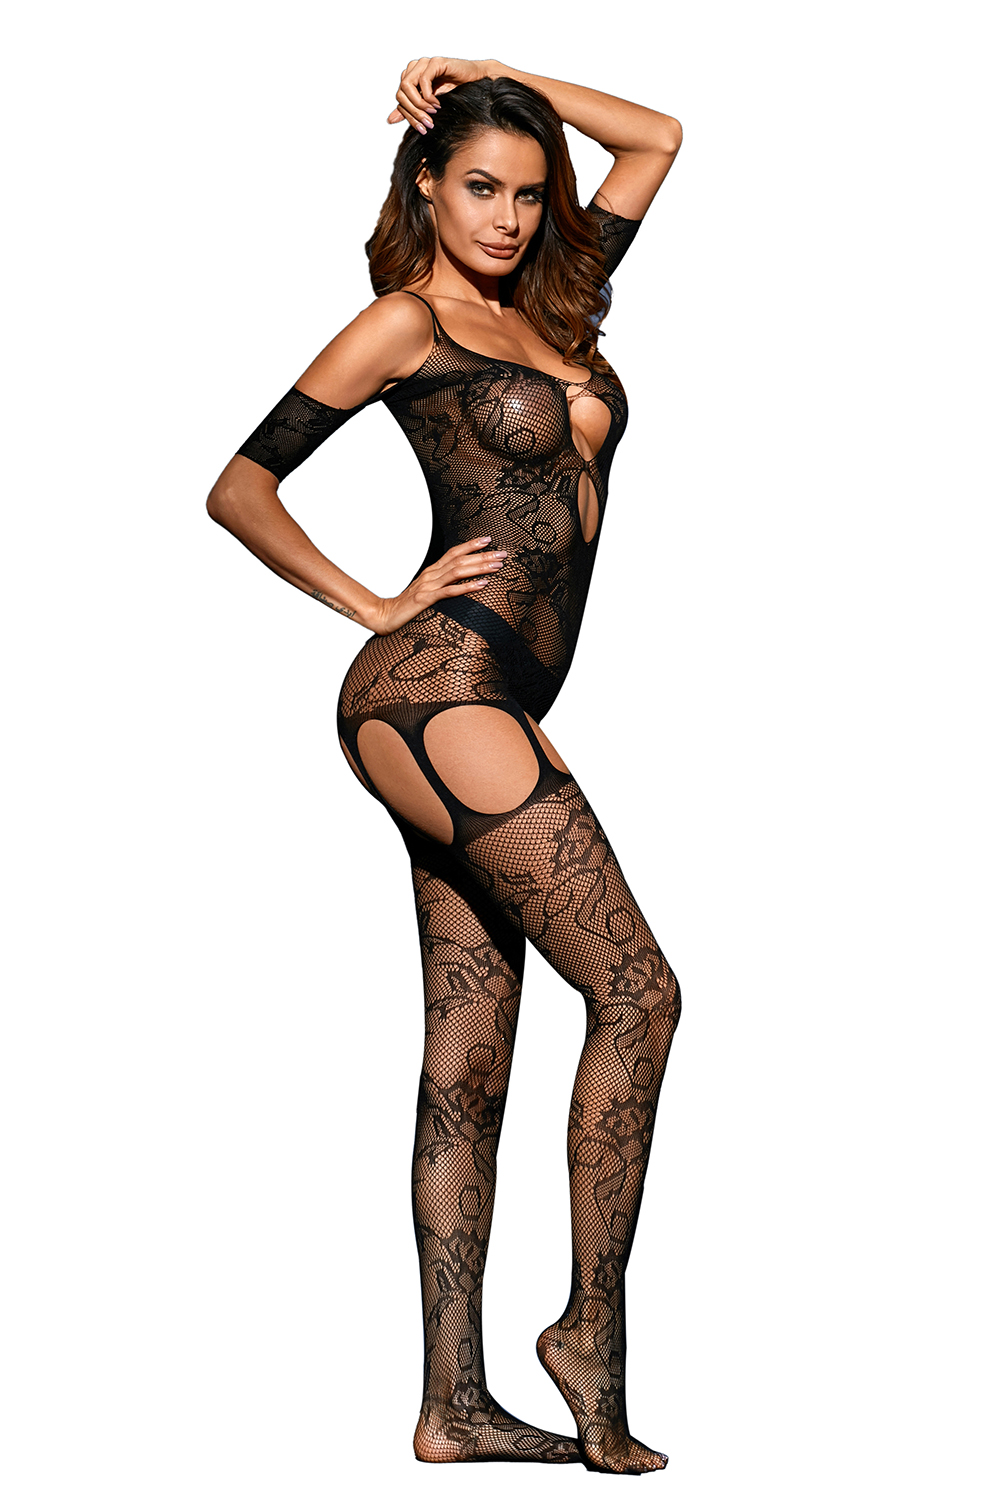 993be0f452 Black Pothole Cutout Bare Shoulder Lace Bodystocking - ZEKELA.com